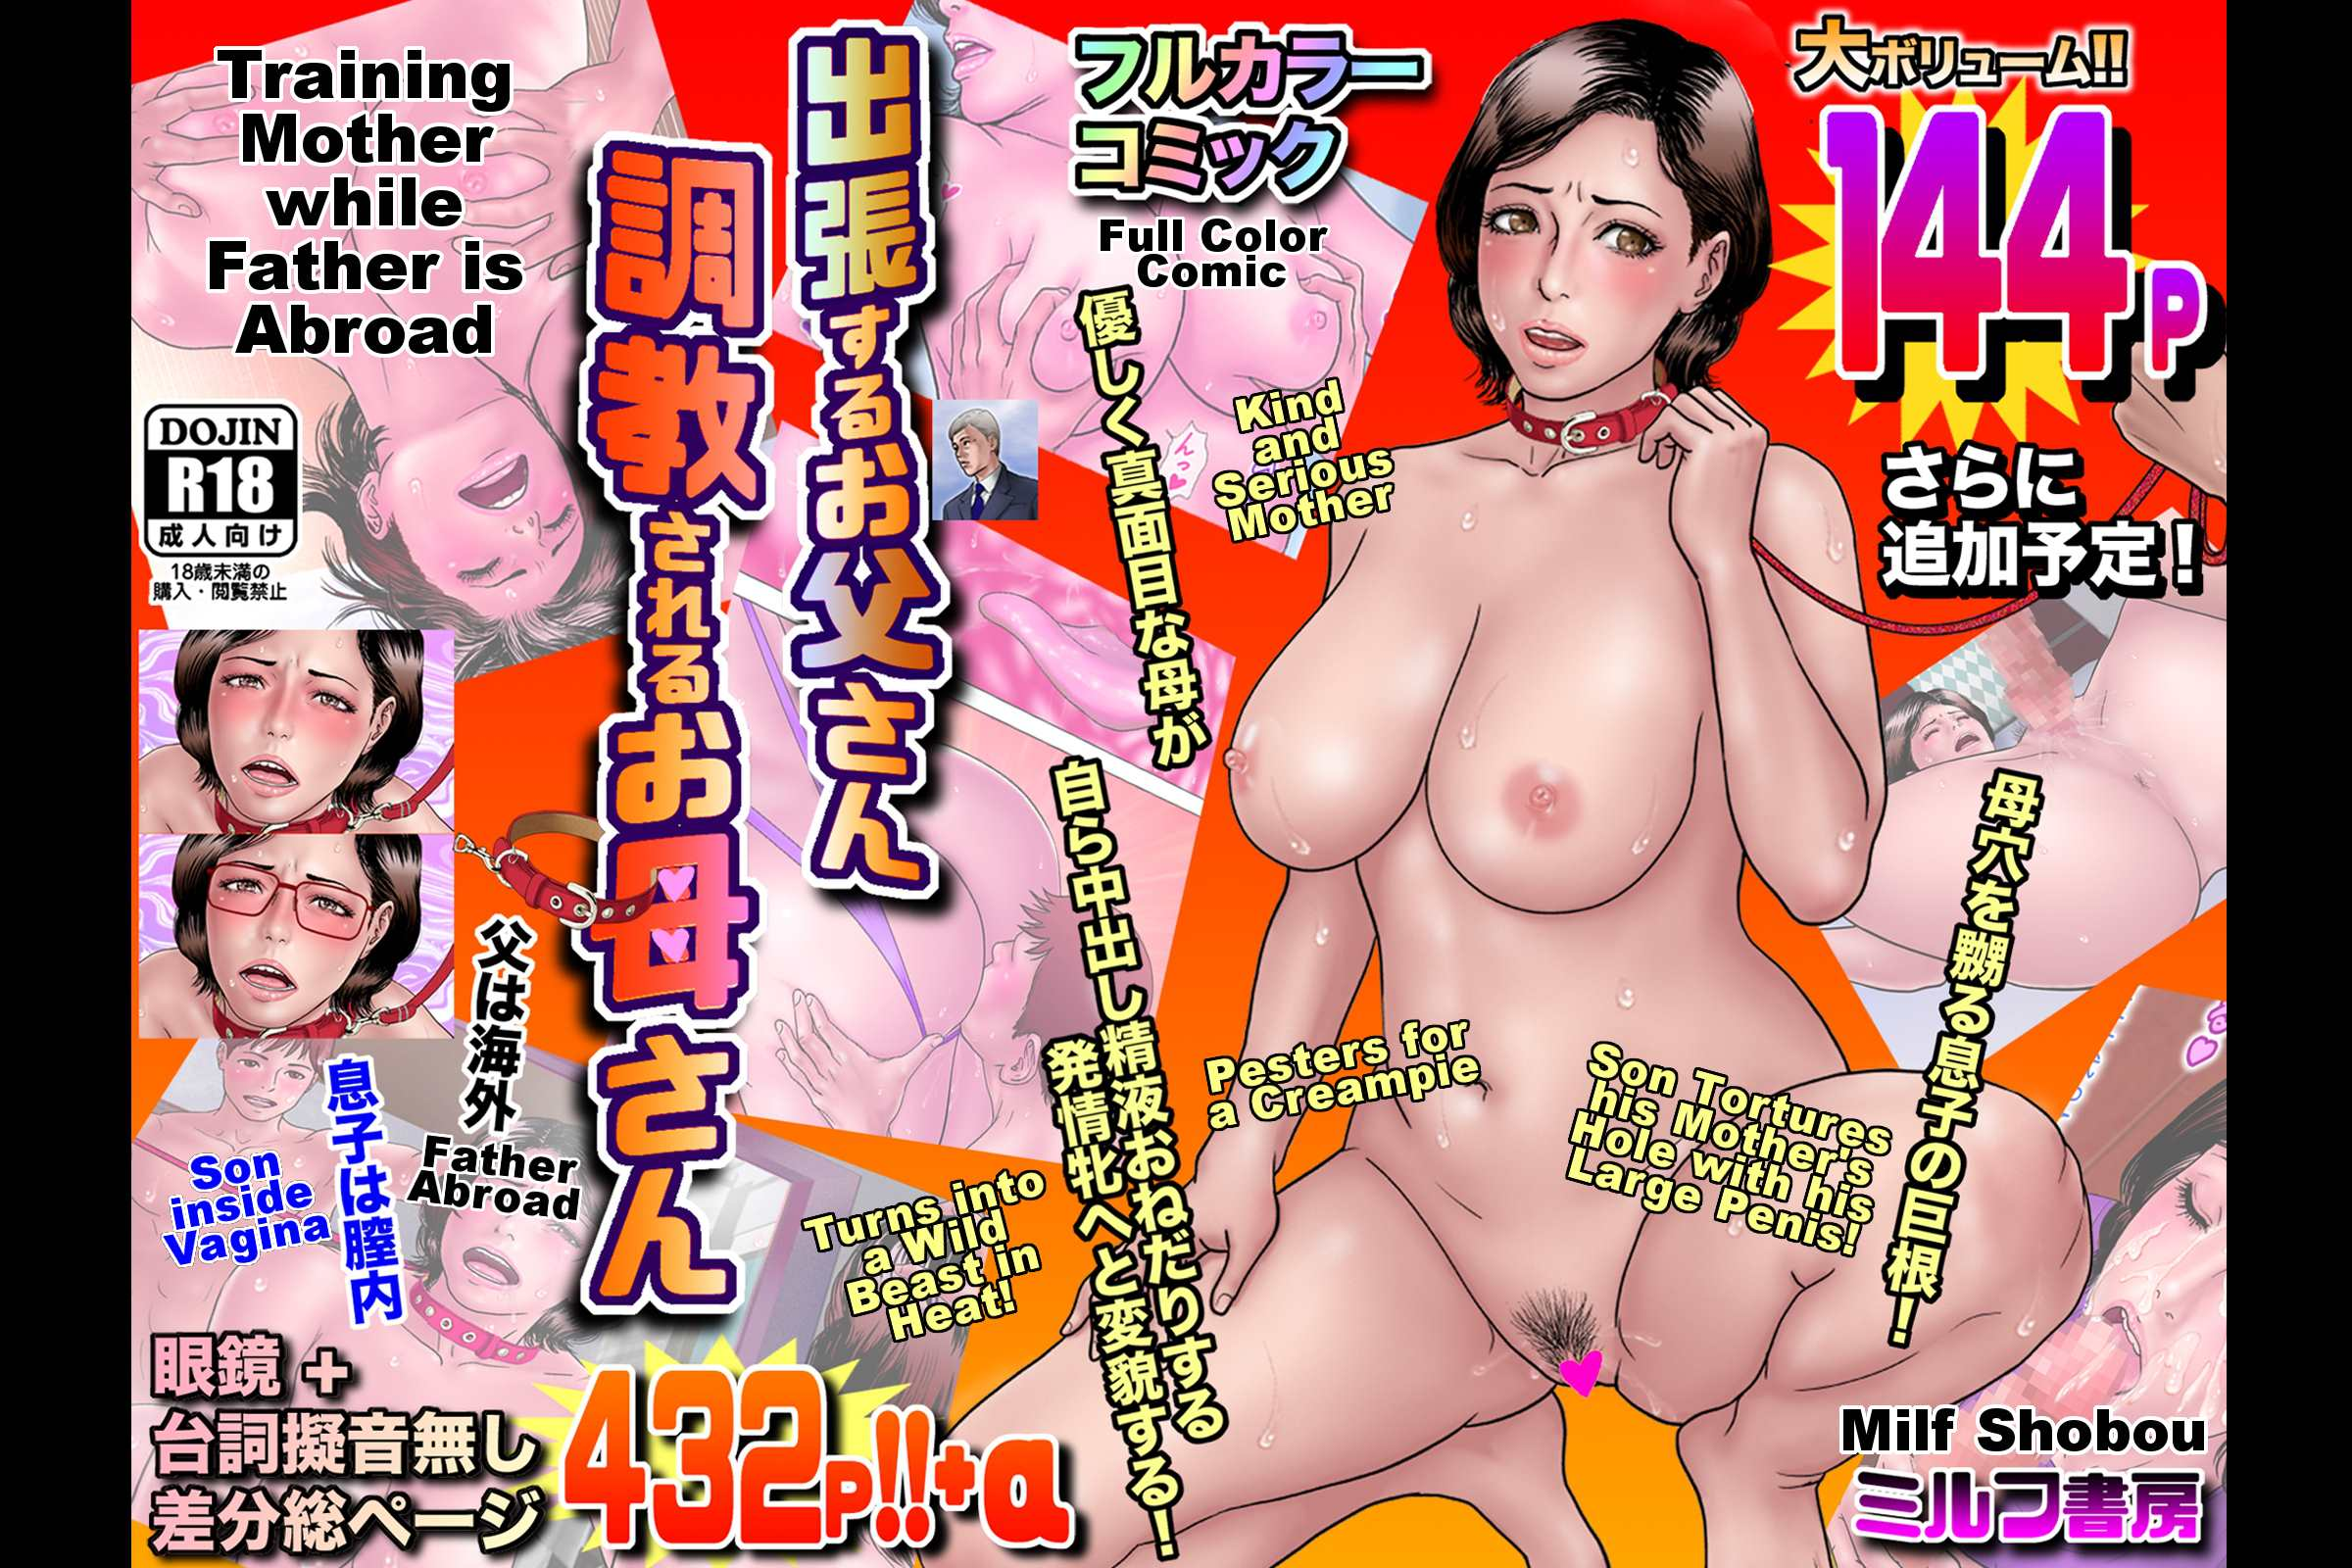 Porn Comics - Training Mother while Father is Abroad porn comics 8 muses